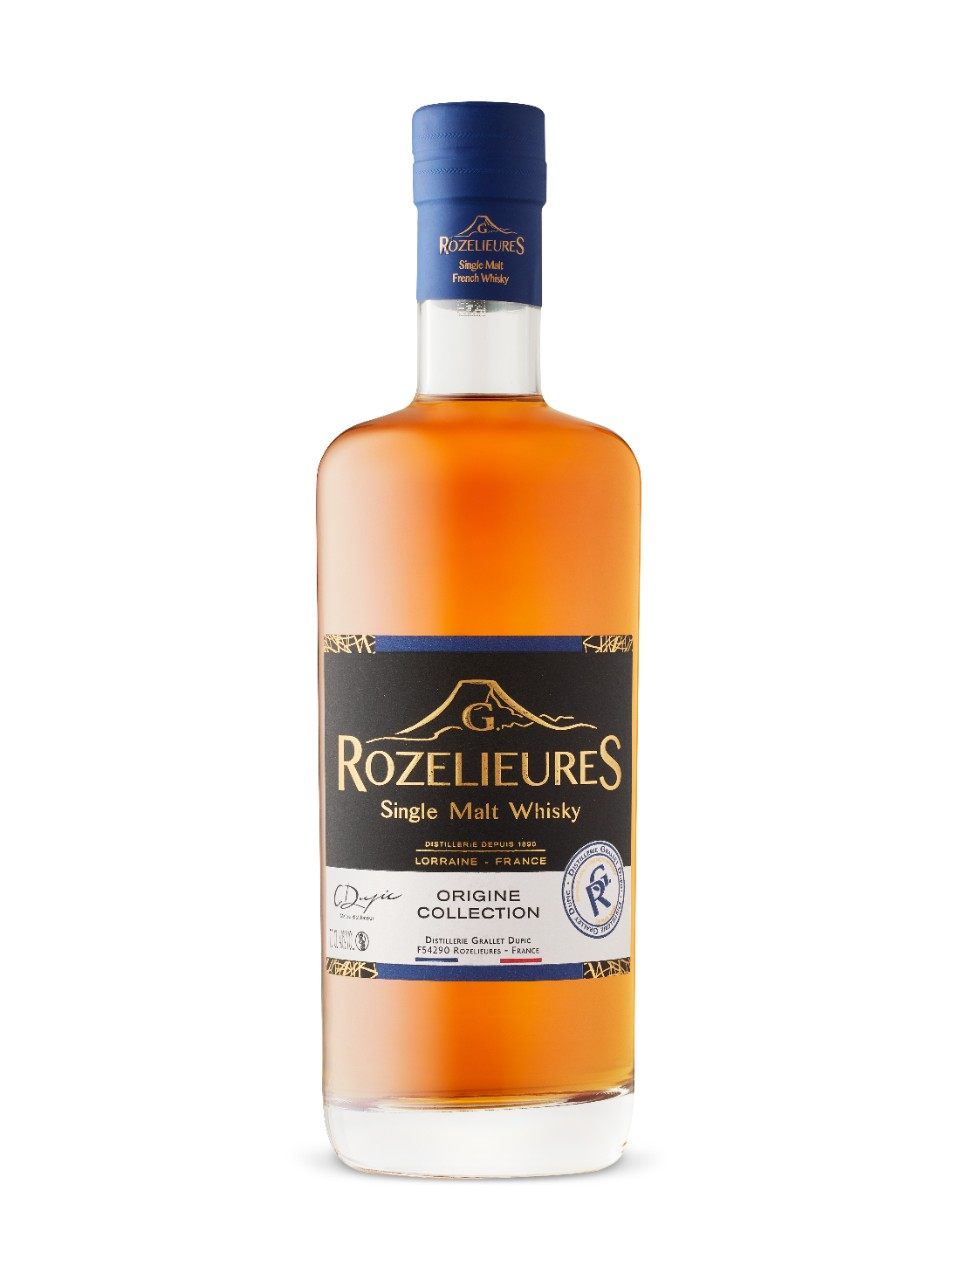 Image for Rozelieures Origine Collection Single Malt Whisky from LCBO